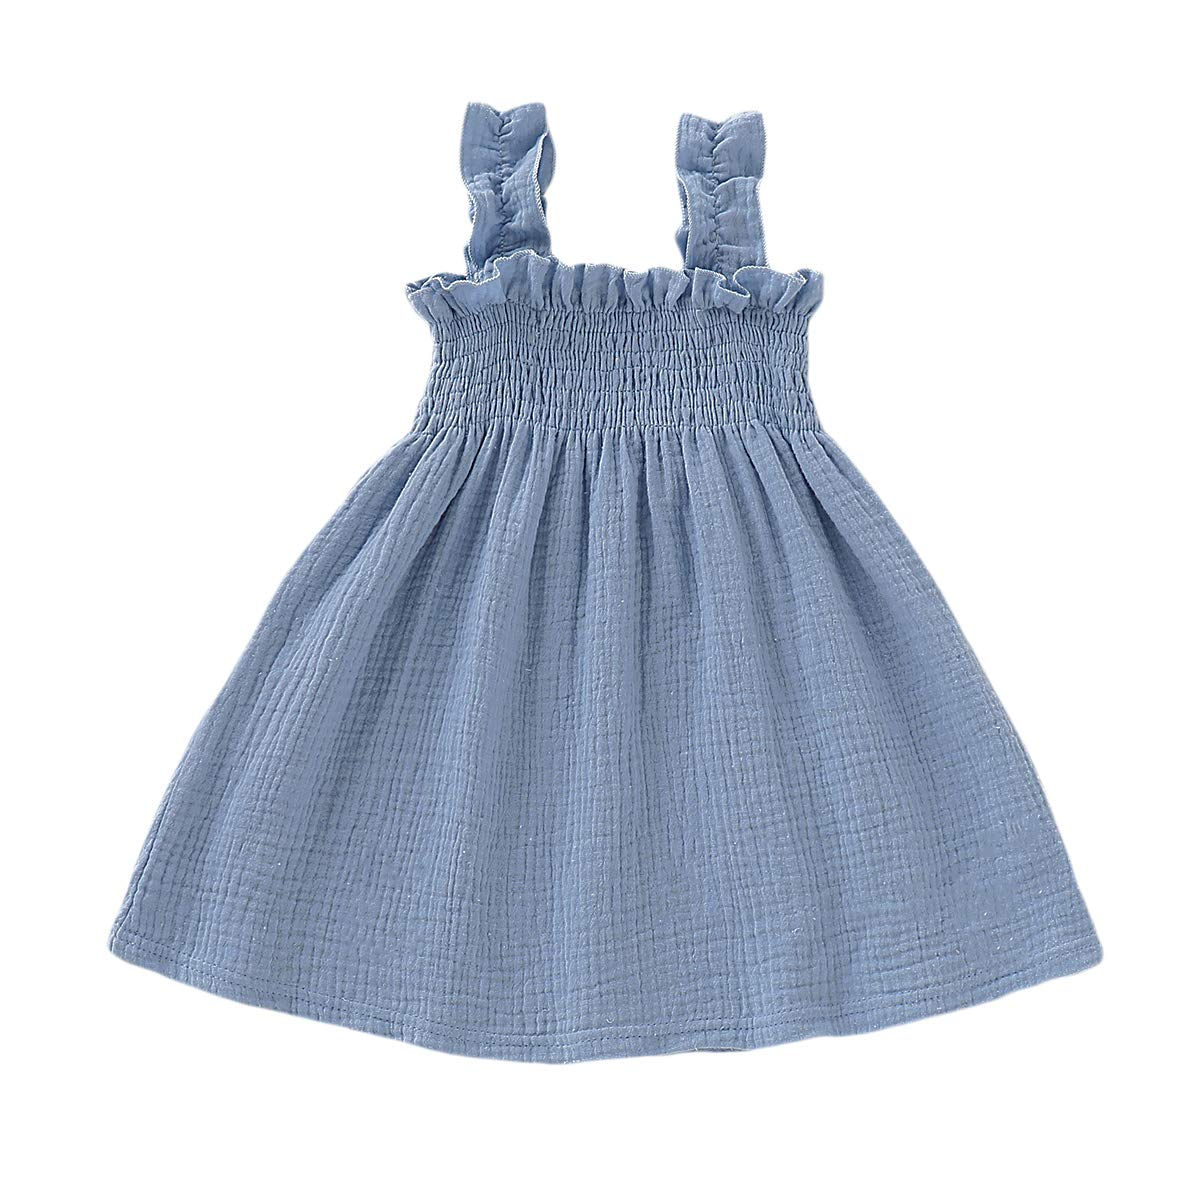 YOUNGER TREE Toddler Baby Girls Casual Clothing Summer Sleeveless Skirt Strap Dress Beach Skirt Outfits